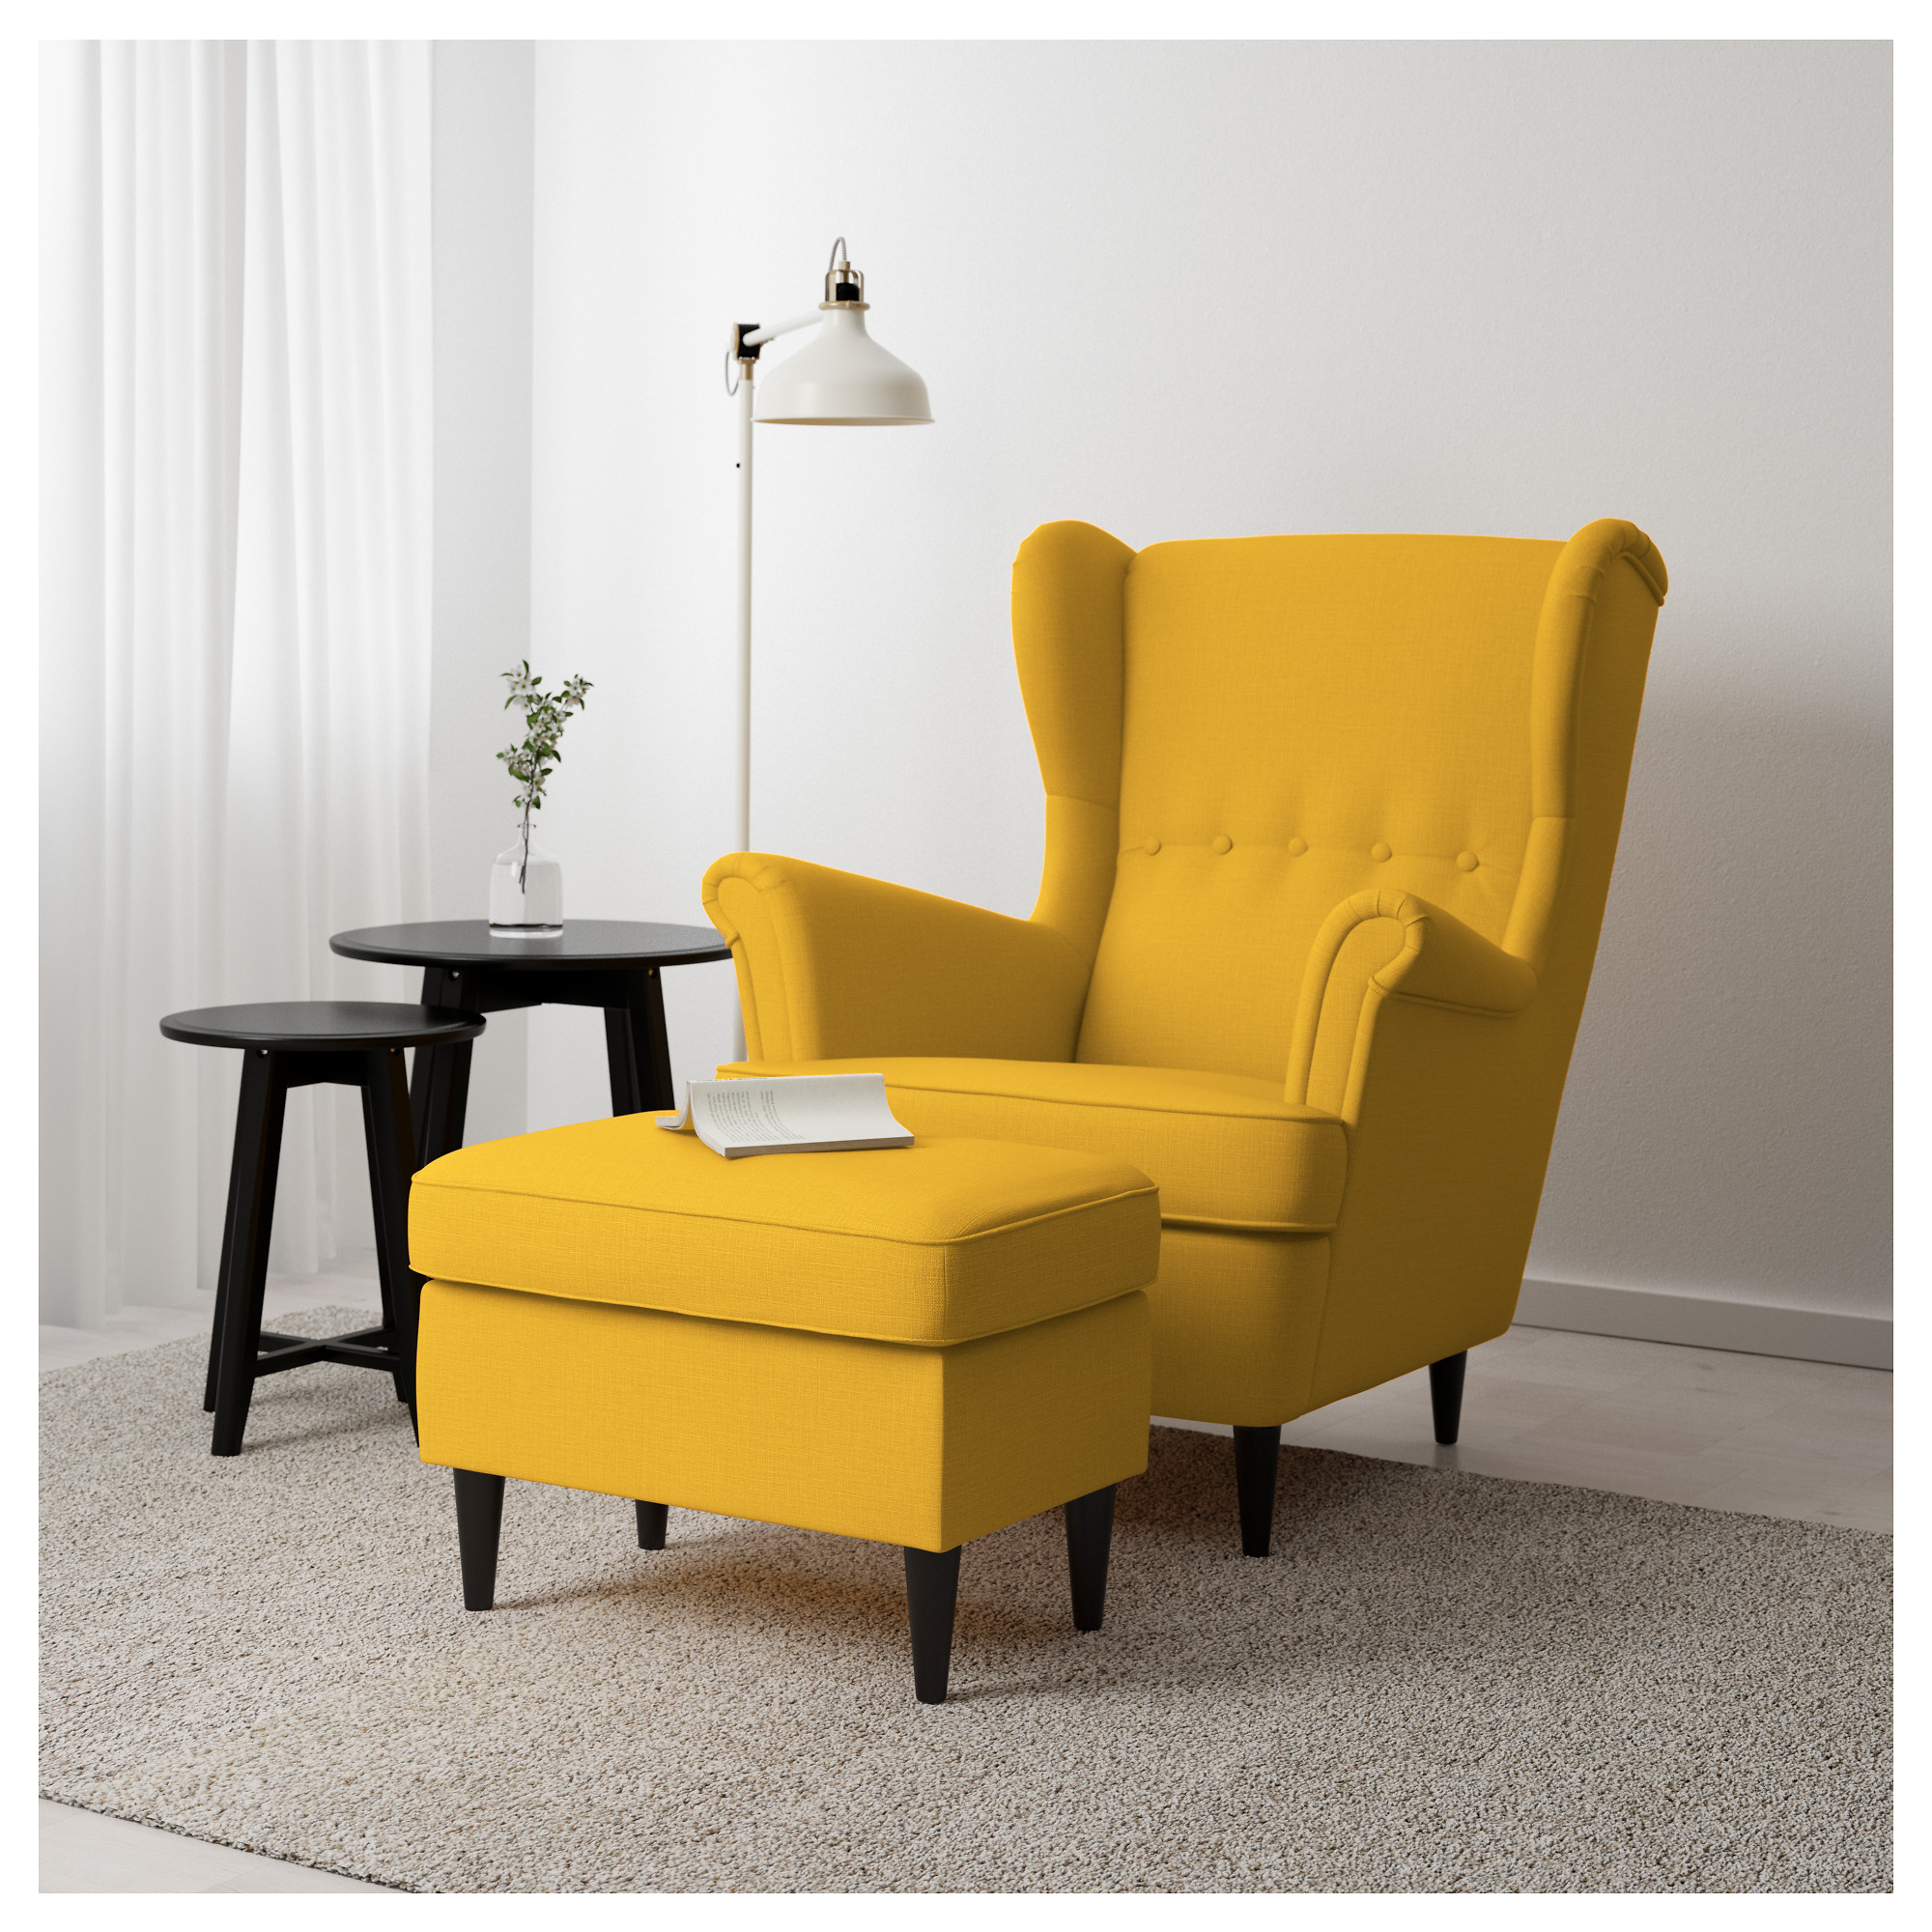 Ikea Yellow Chair Sofa Cute Modern Dining